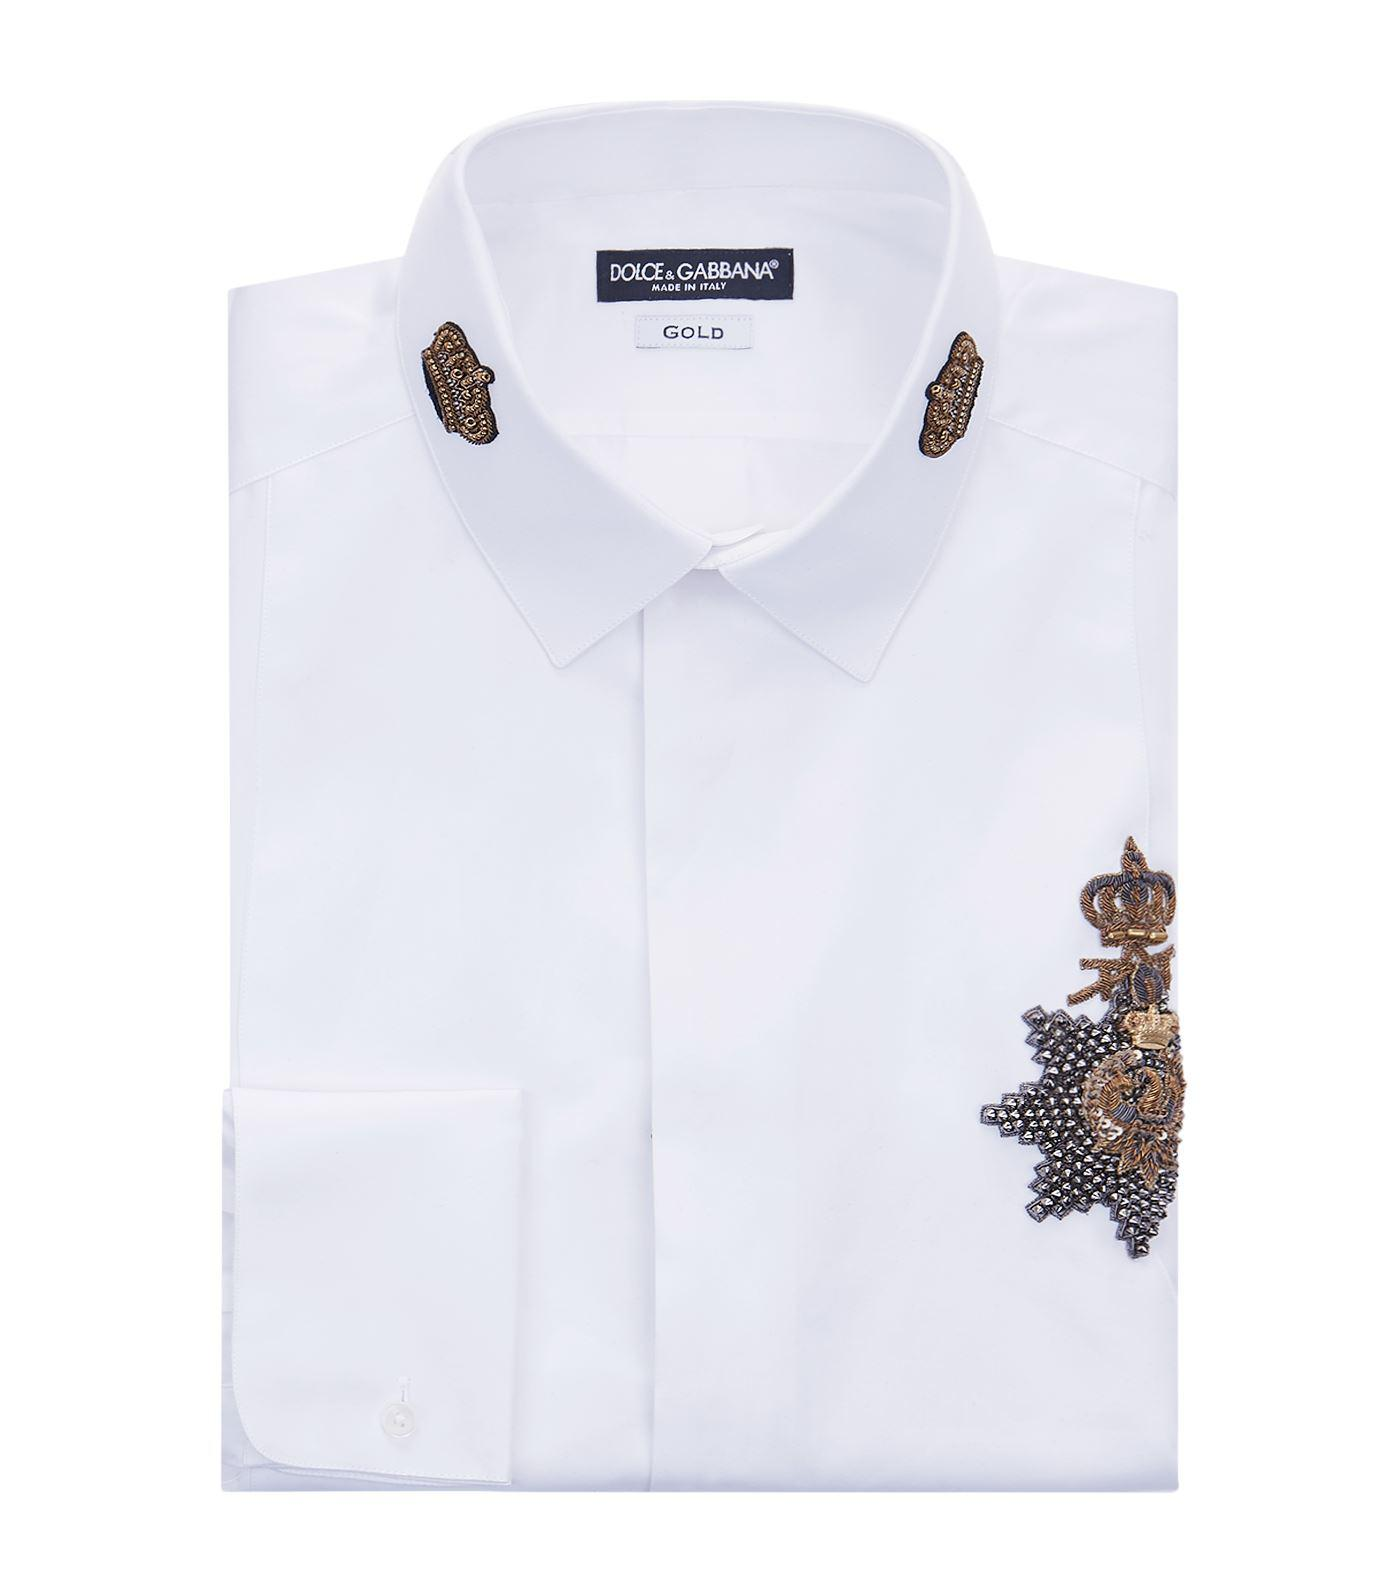 Many Kinds Of Cheap Price Outlet Store Locations Dolce & Gabbana embellished shirt Sale Release Dates Cheap Price Discount Authentic xBbZHDJgp